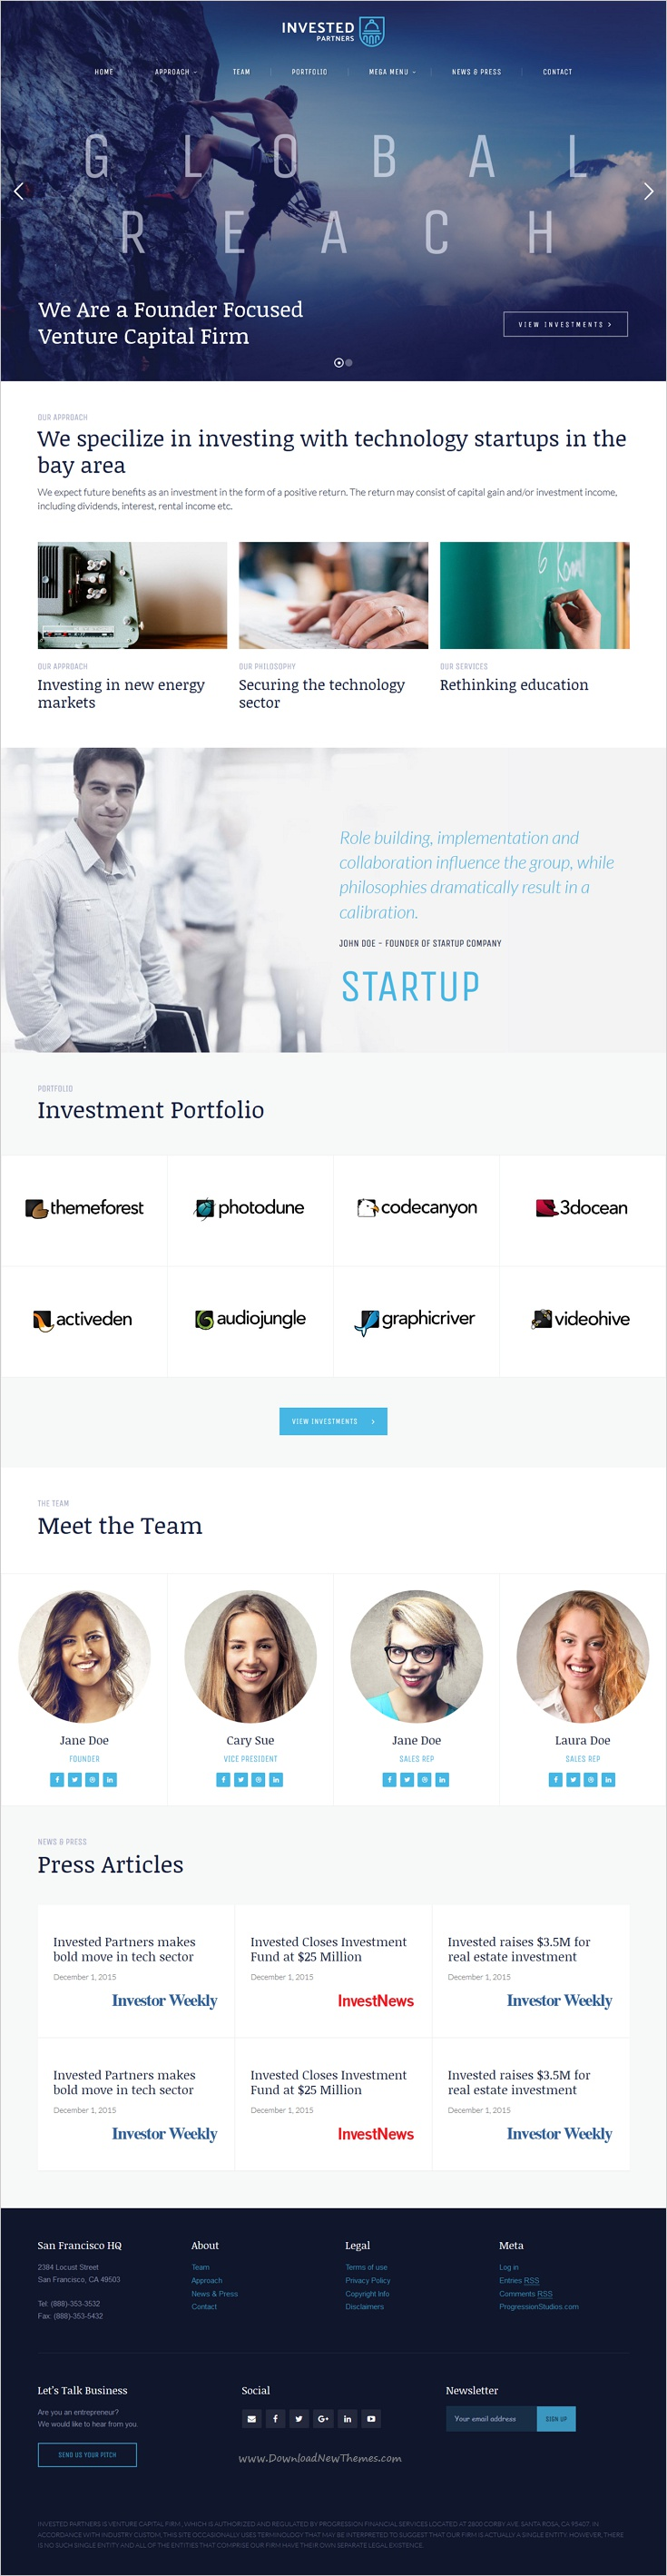 Invested Is A Wonderful HTML Template For Venture Capital And - Venture capital website template